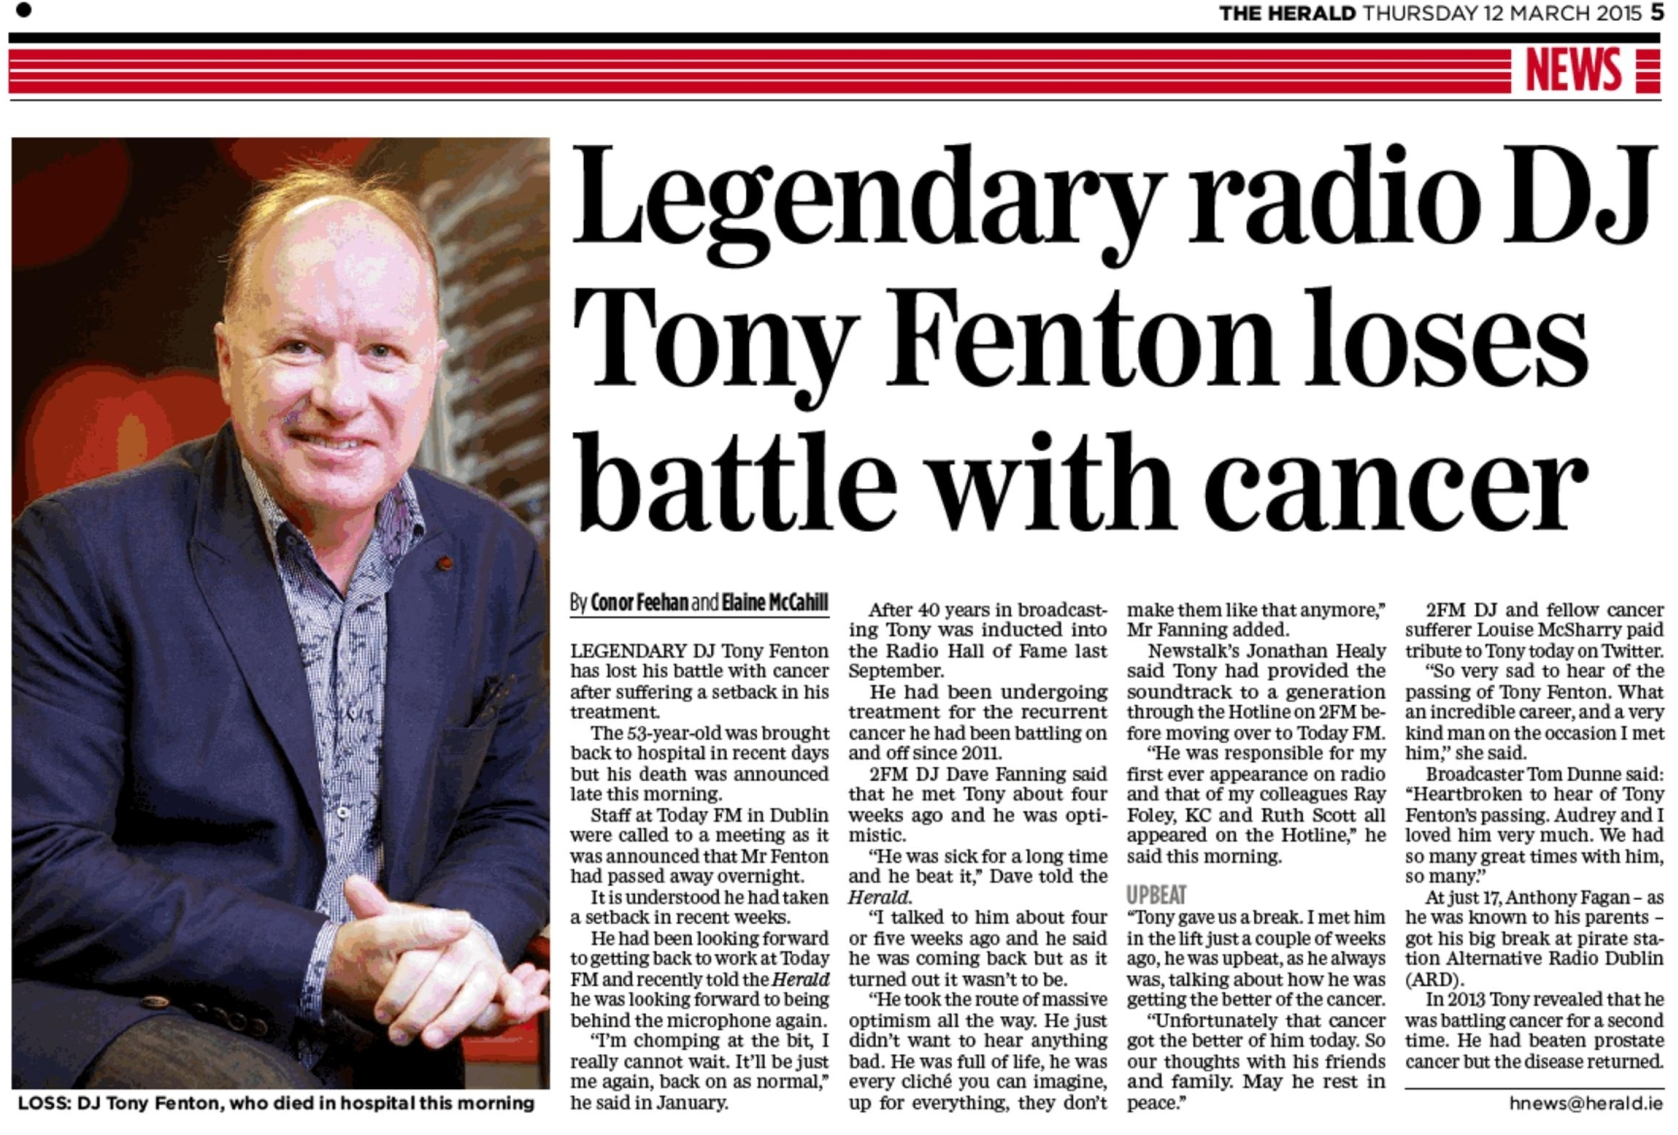 Legendary radio DJ Tony Fenton loses battle with cancer was a newspaper headline from The Herald dated March 12th 2015